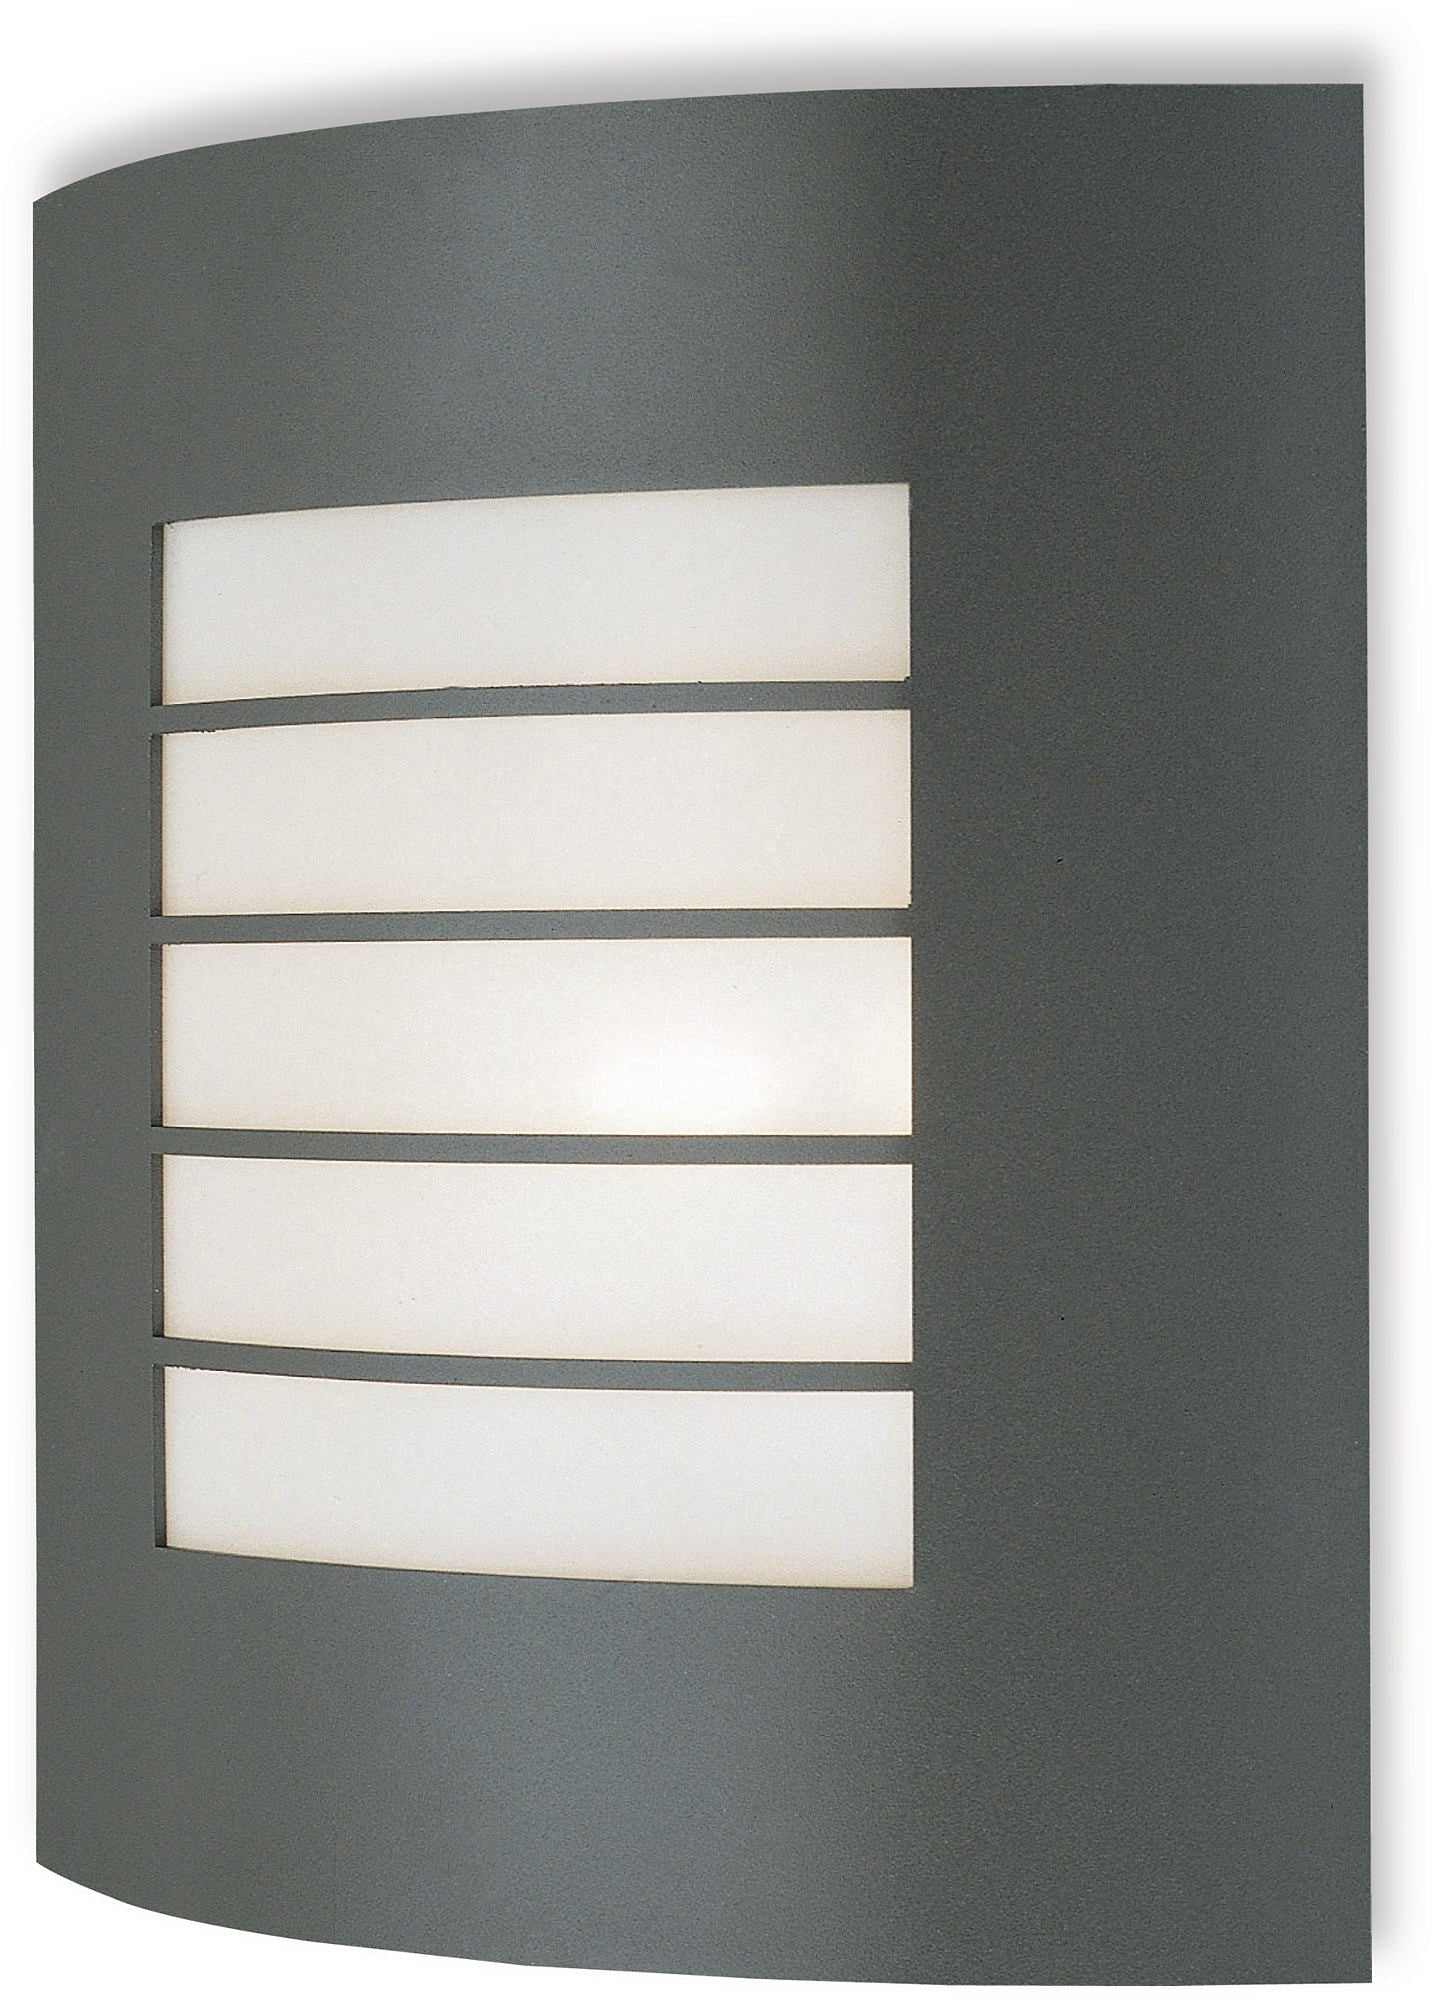 Philips myGarden Wall Light